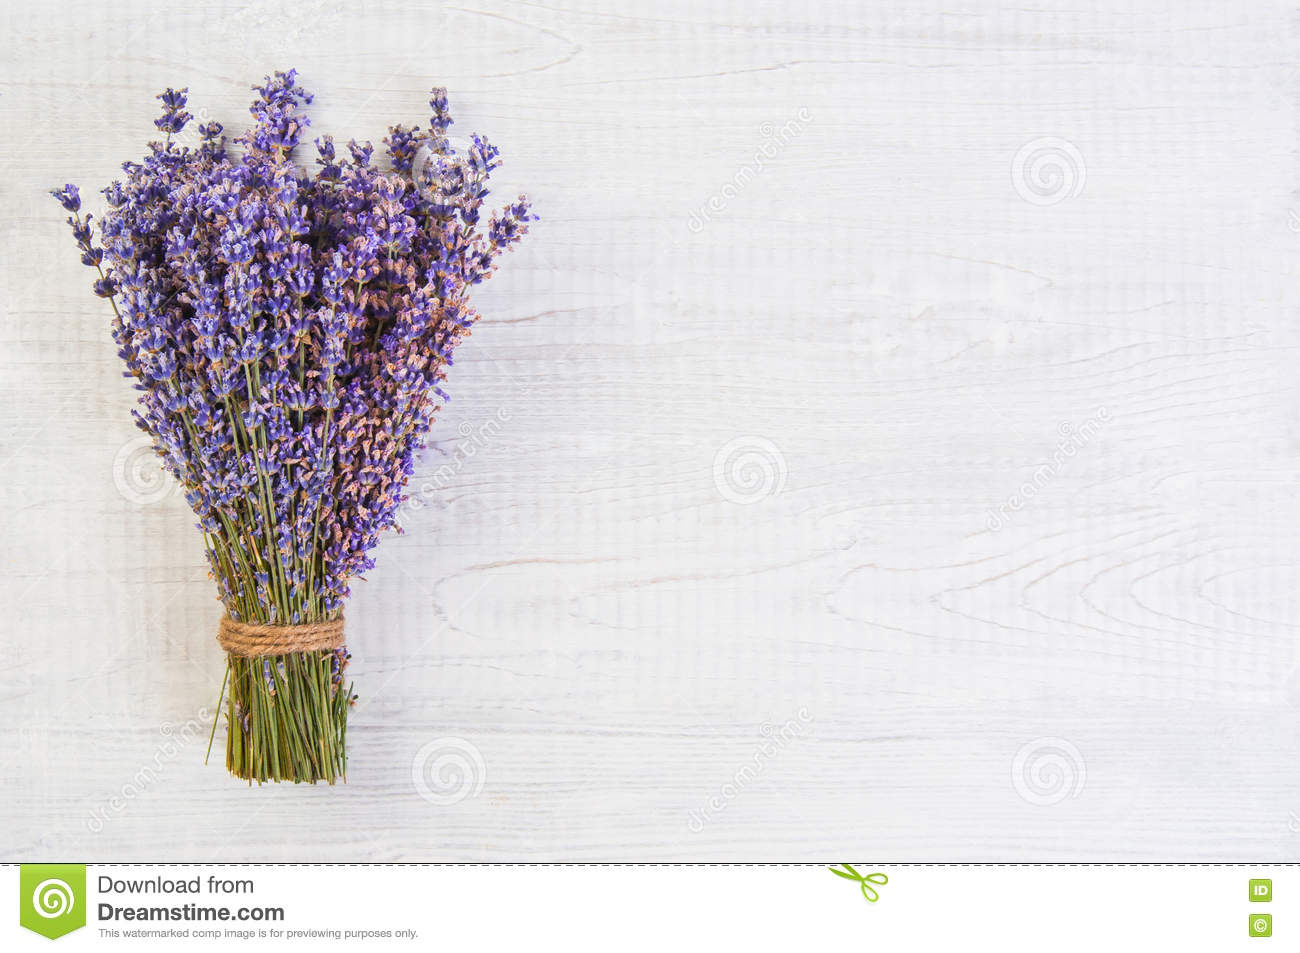 Fresh Lavender Flowers On White Wood Table Background Free Space Stock Image